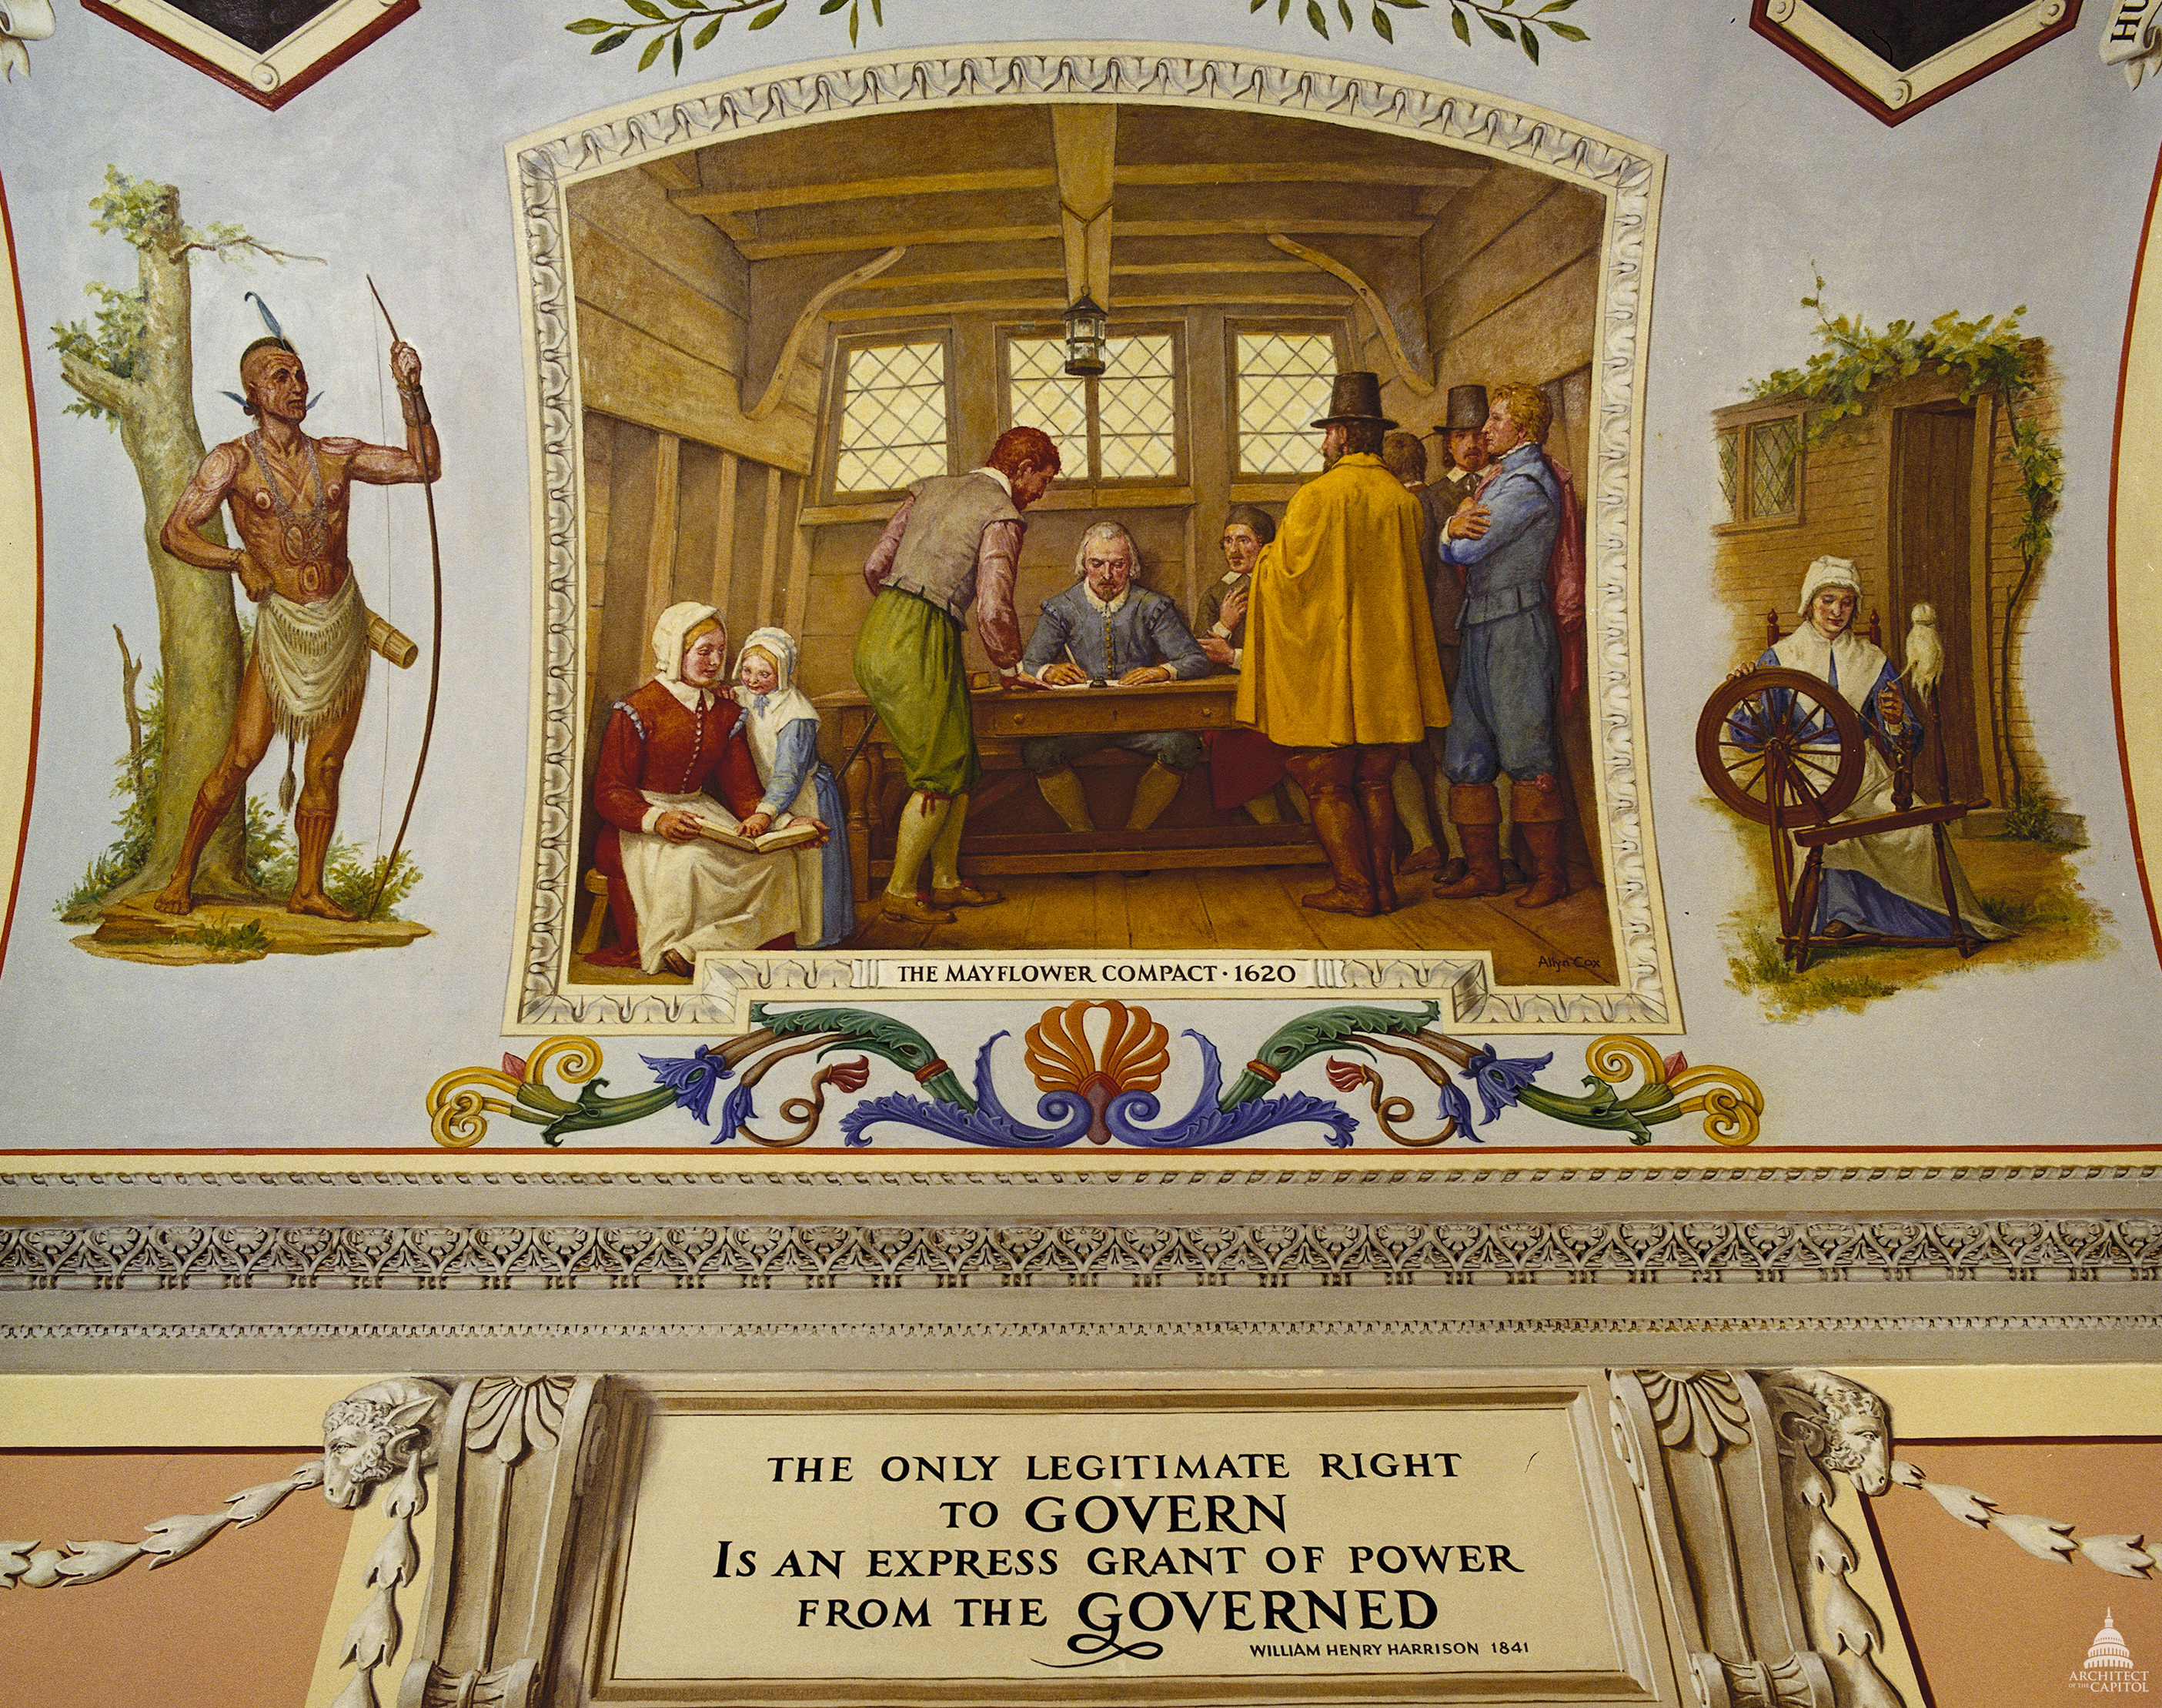 Architect of the Capitol photograph, Signing of the Mayflower Compact